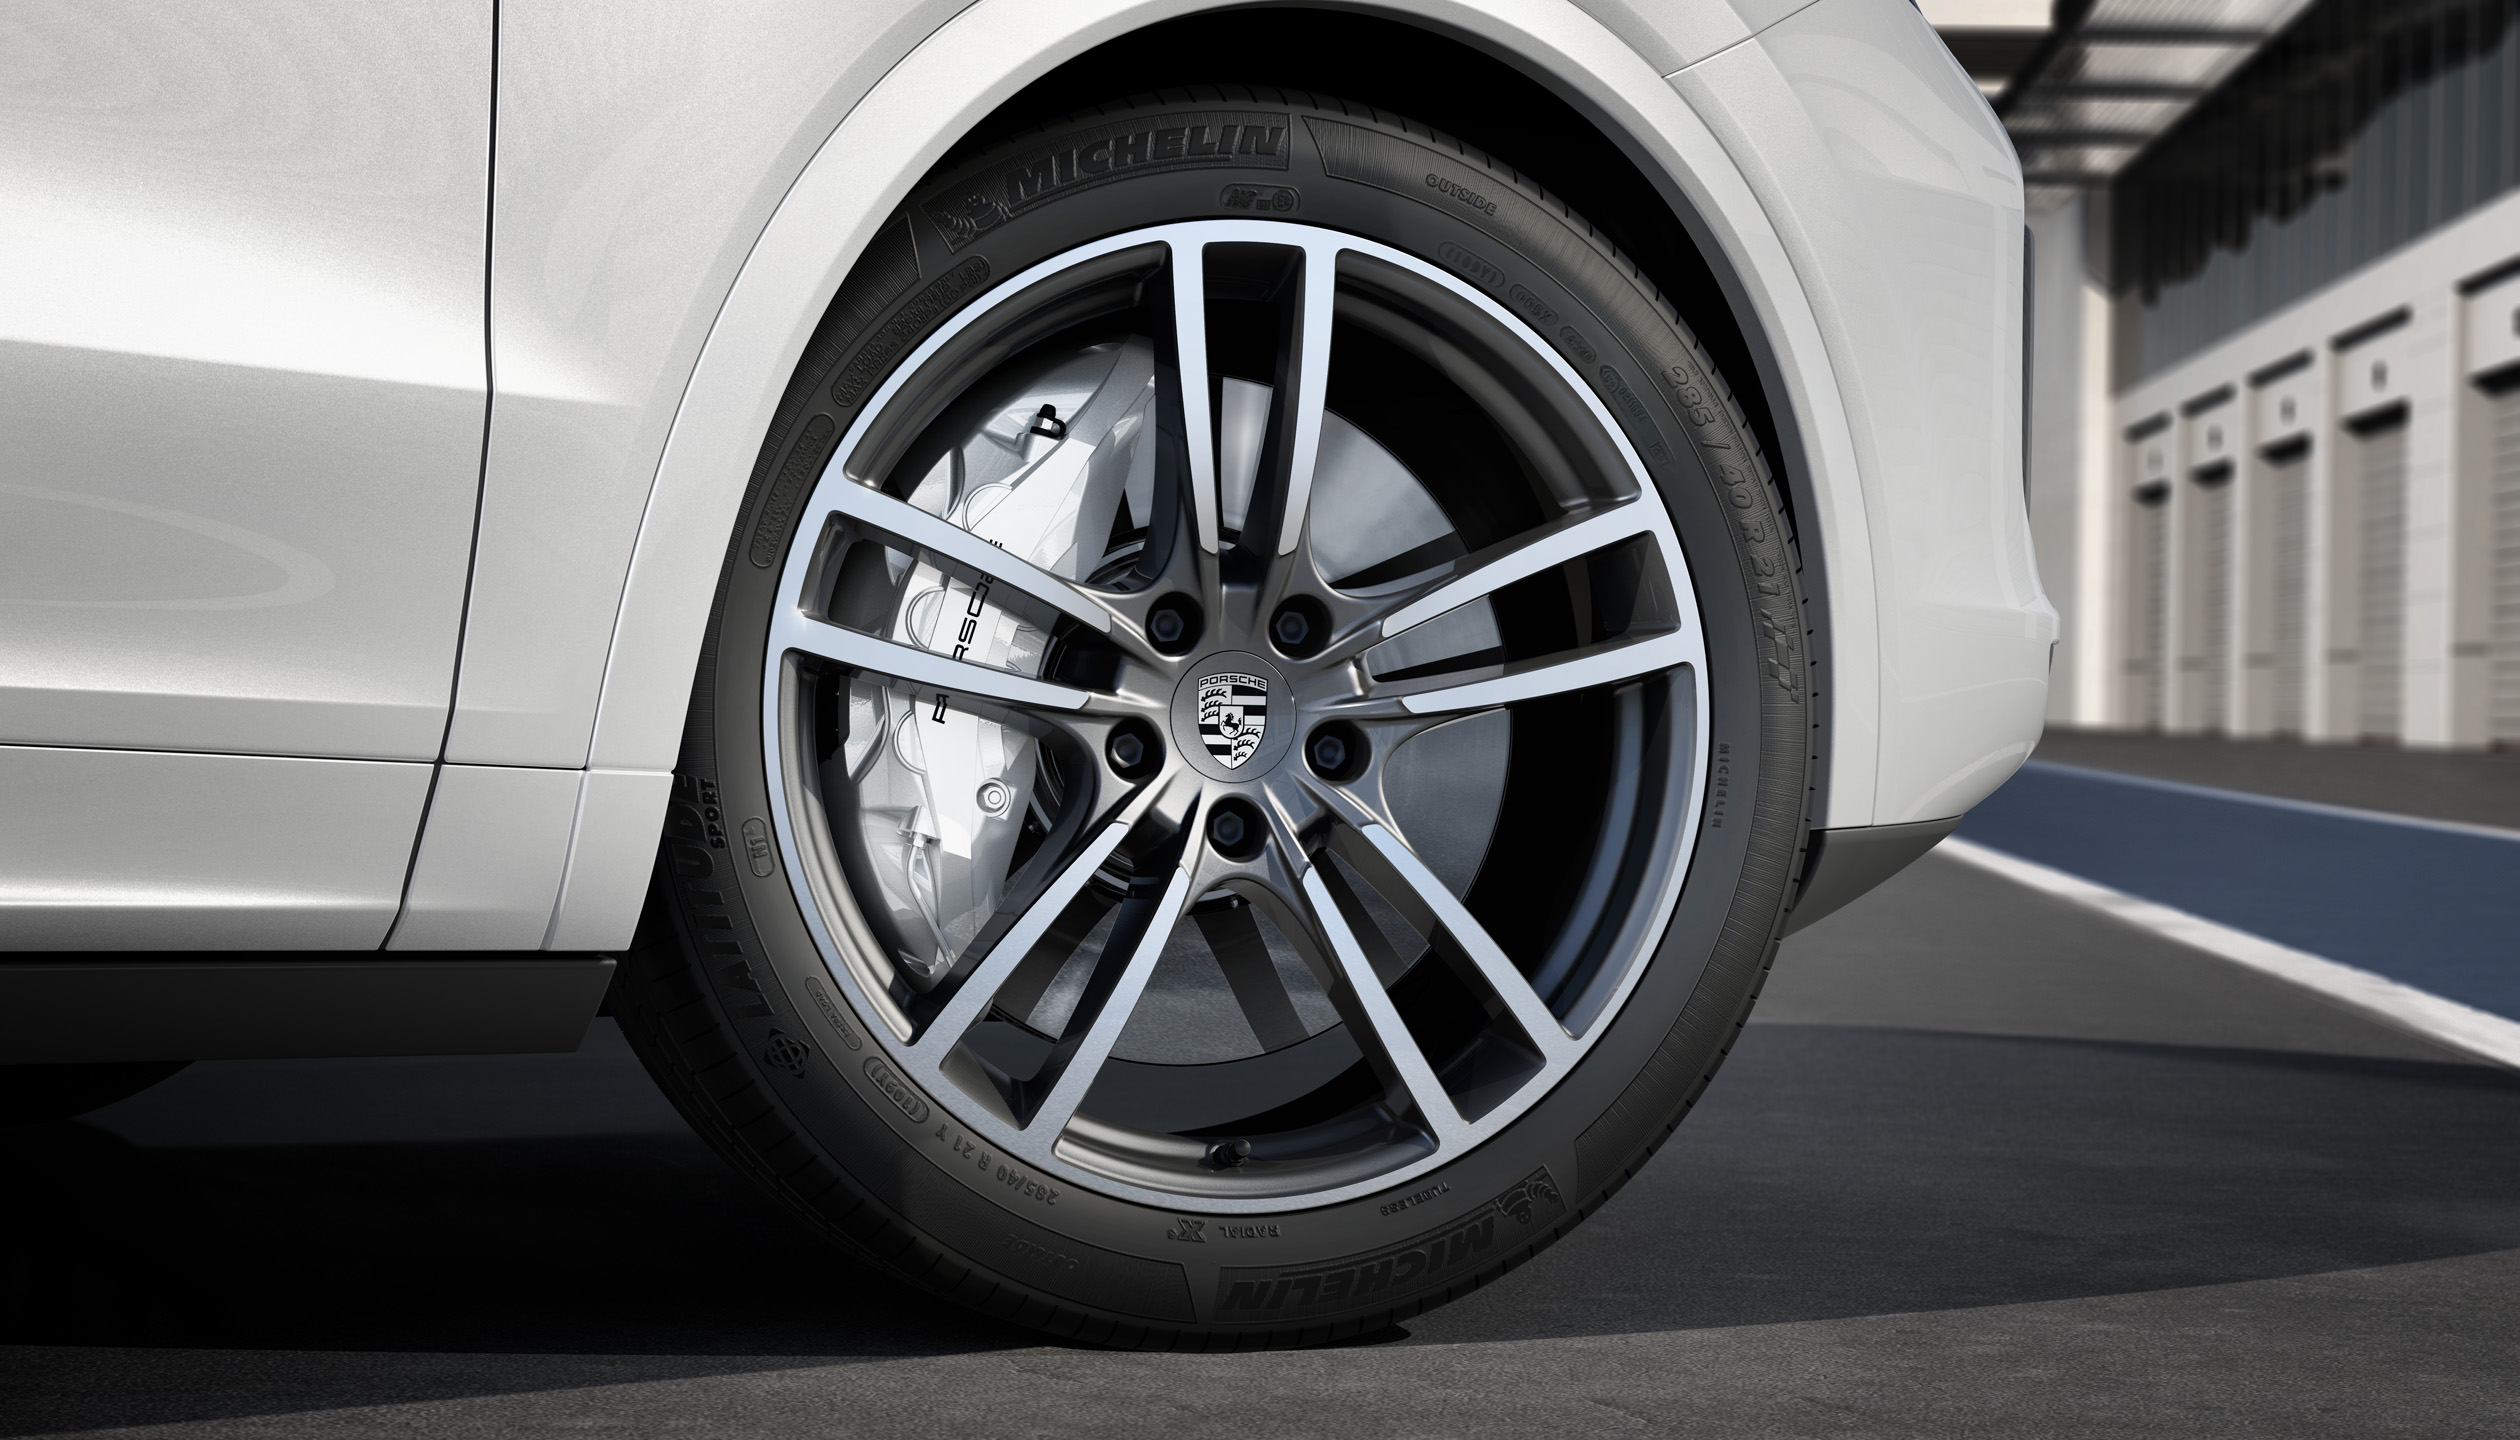 Has Porsche reinvented the brake rotor?